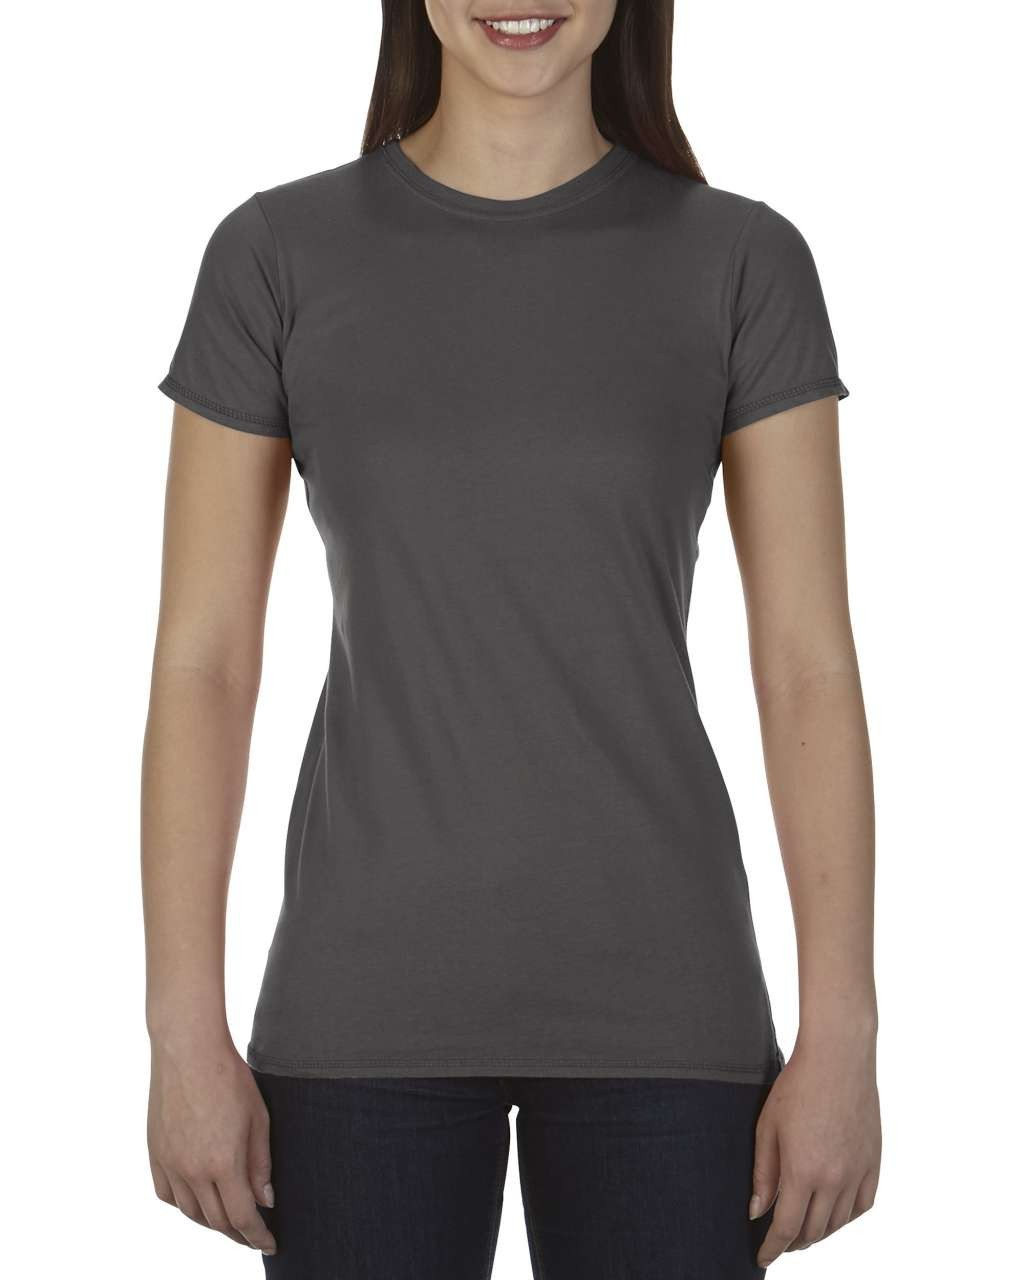 08be3296a Comfort Colors Ladies Fitted Tee, Pepper, M (T-shirt, 90-100% cotton ...